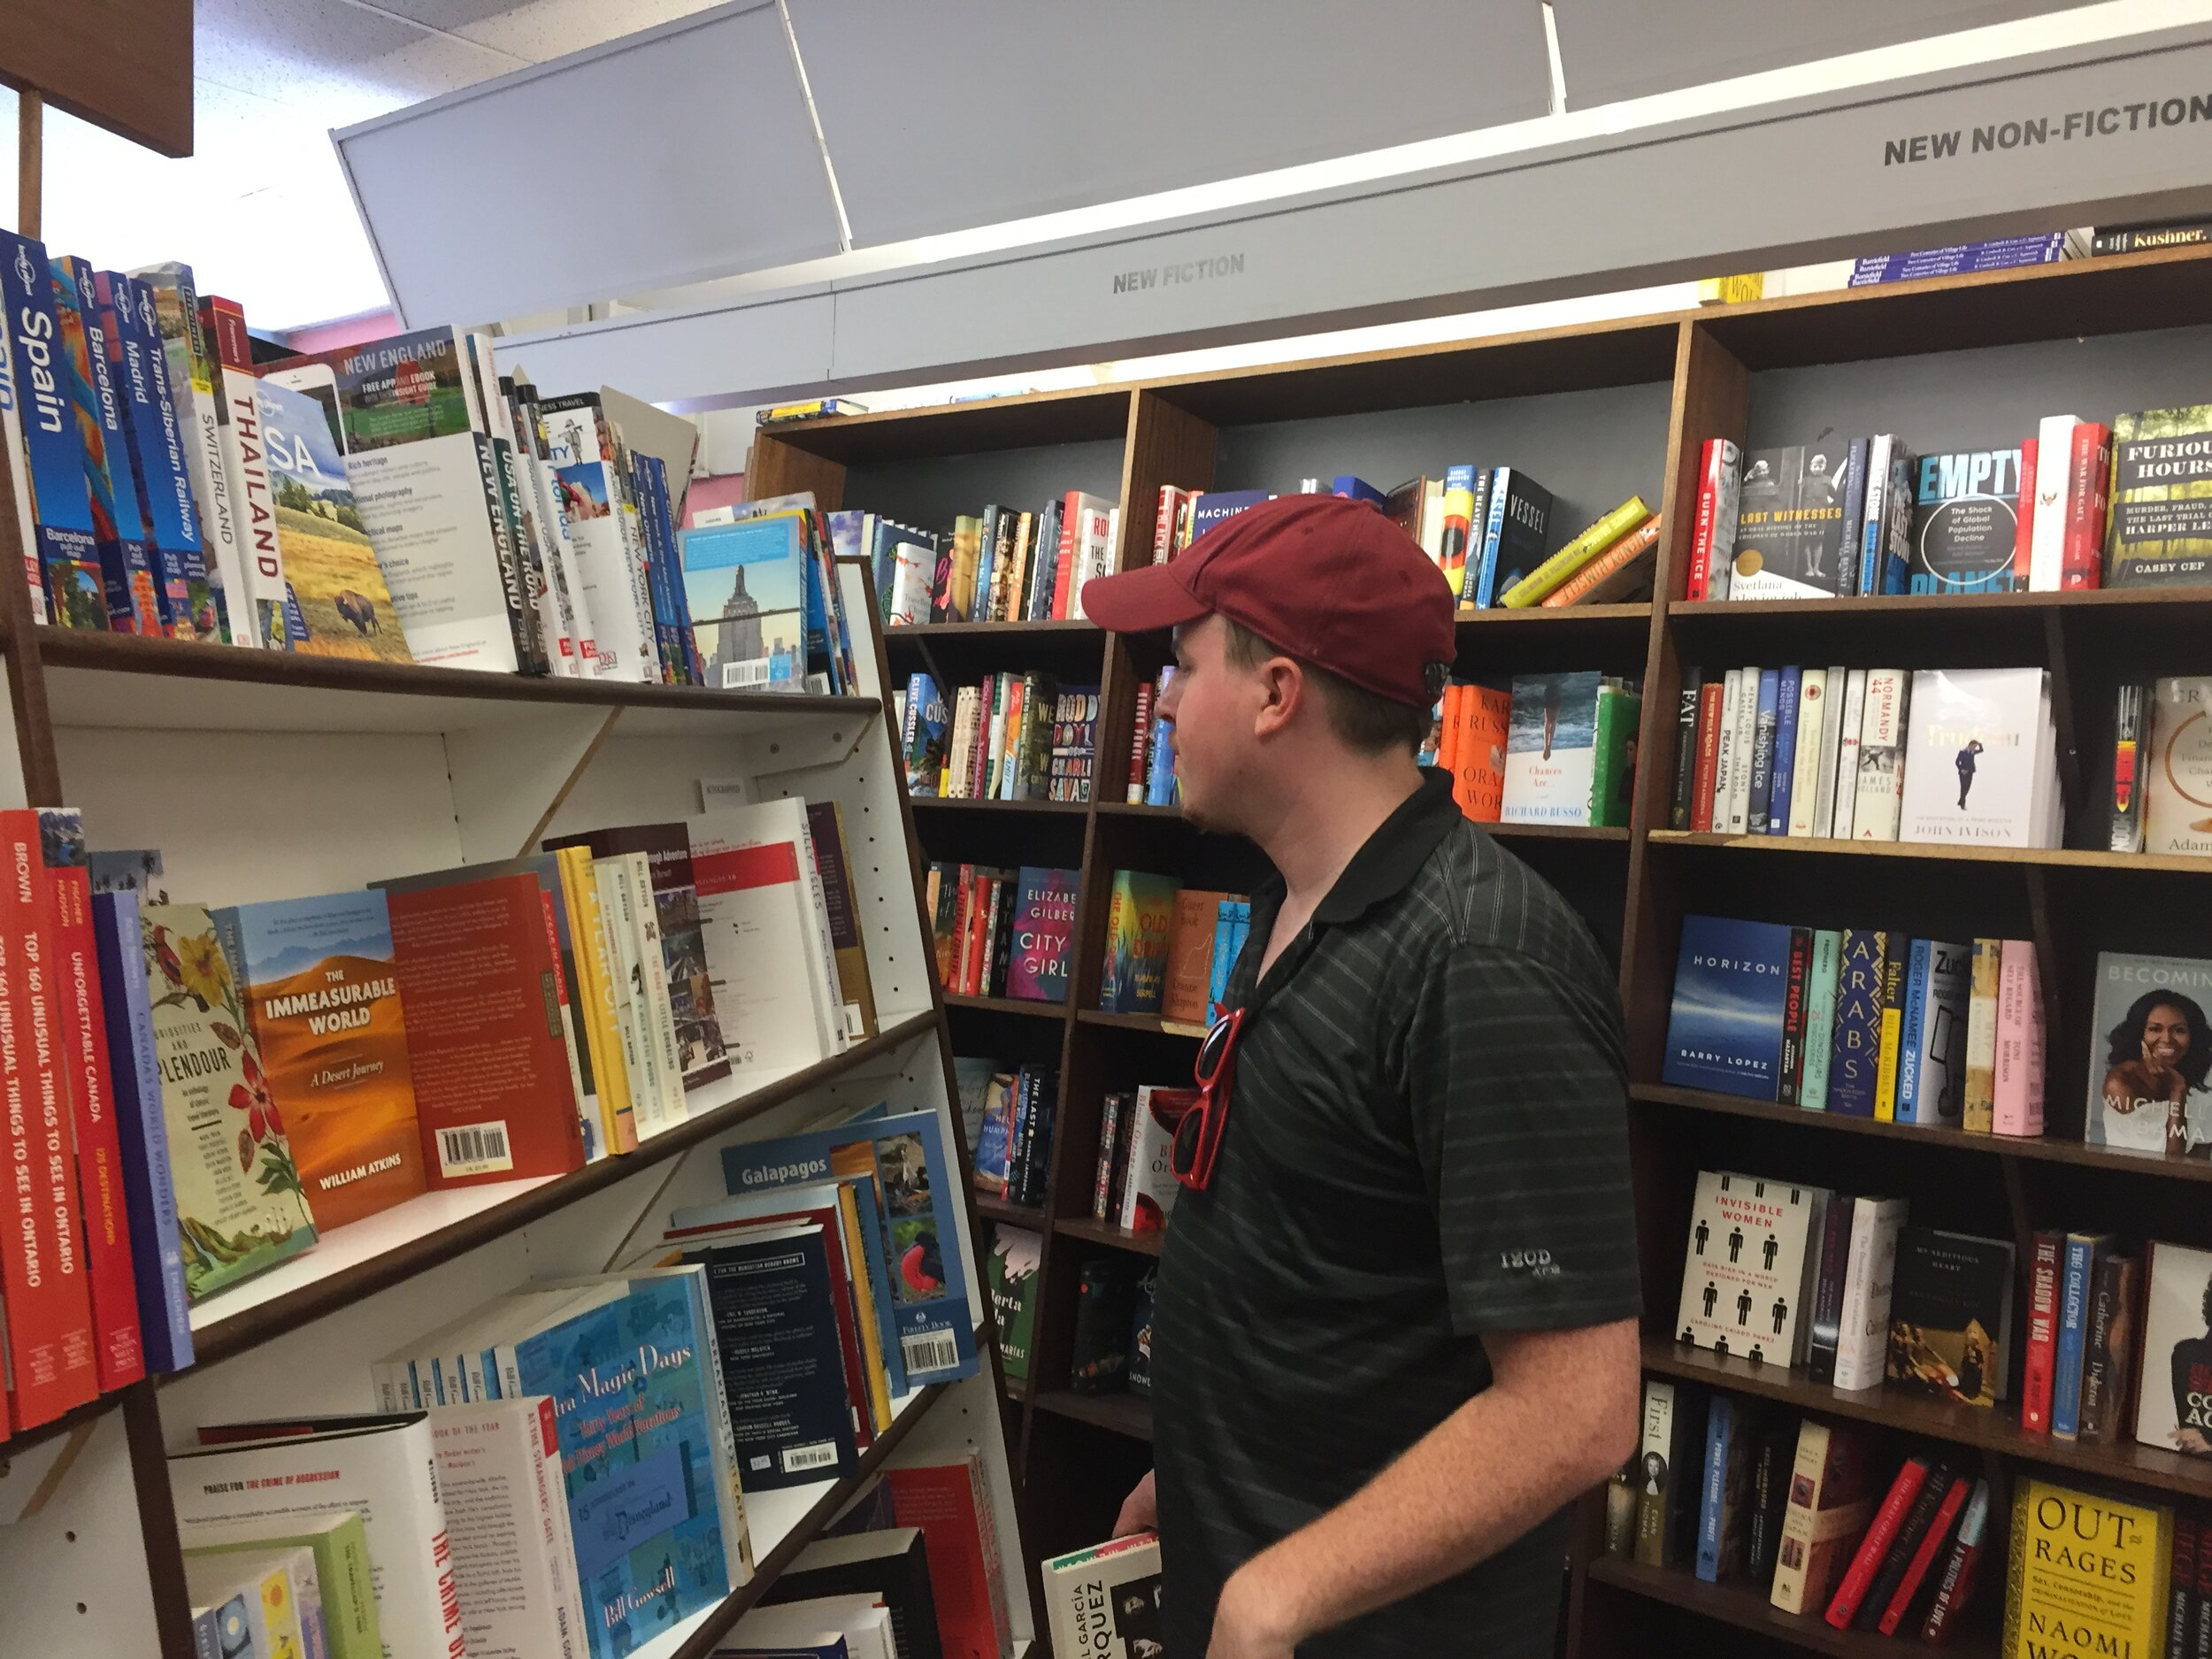 [image description: My husband browsing the travel section of Novel Idea.]